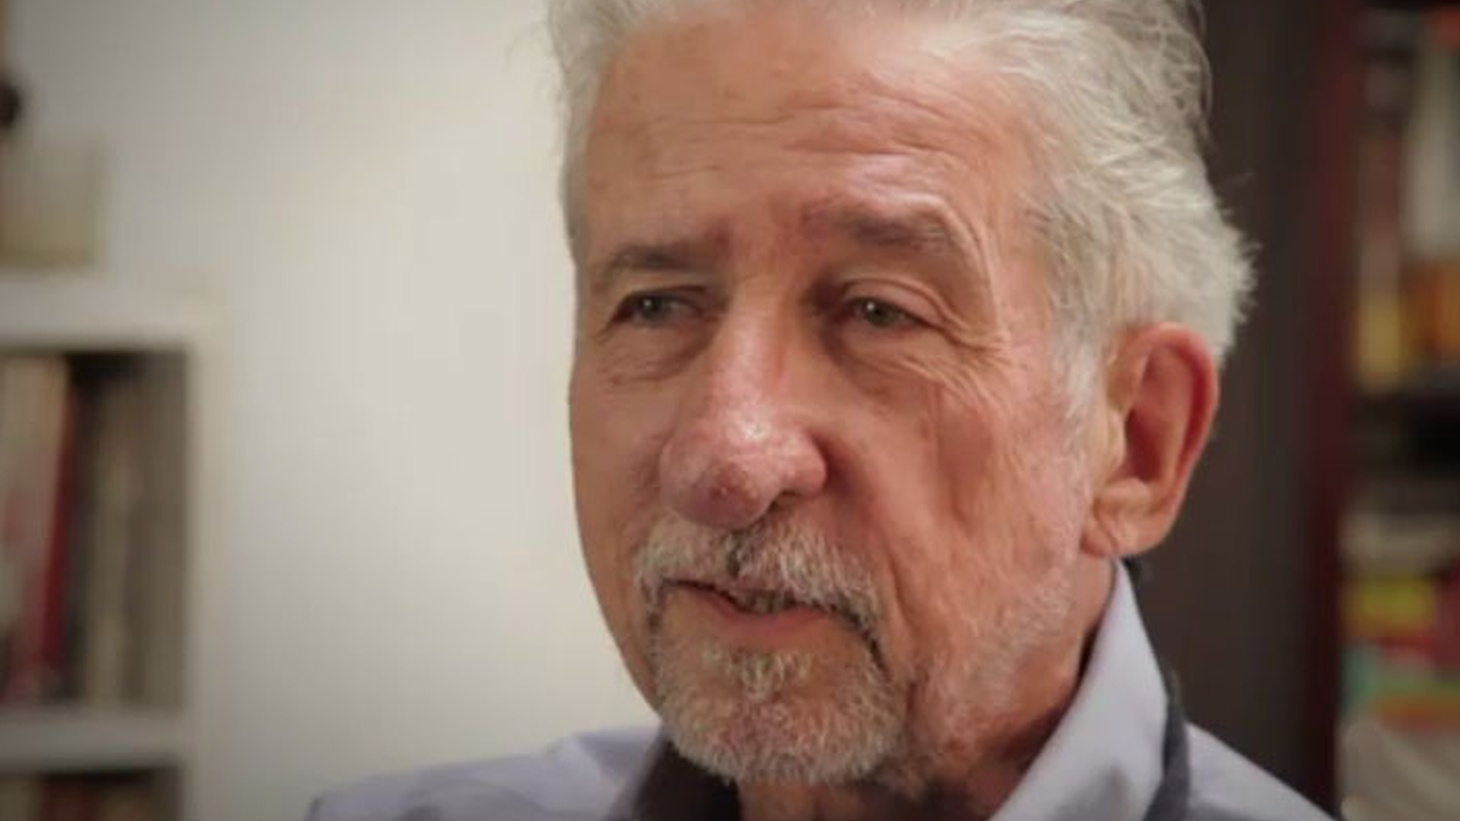 Tom Hayden wrote the  Port Huron Statement , which became a blueprint for civil rights and anti-war protest in the 1960s. He married Hollywood actress Jane Fonda, and together they outraged anti-Communists by visiting Hanoi and bringing back American POWs.